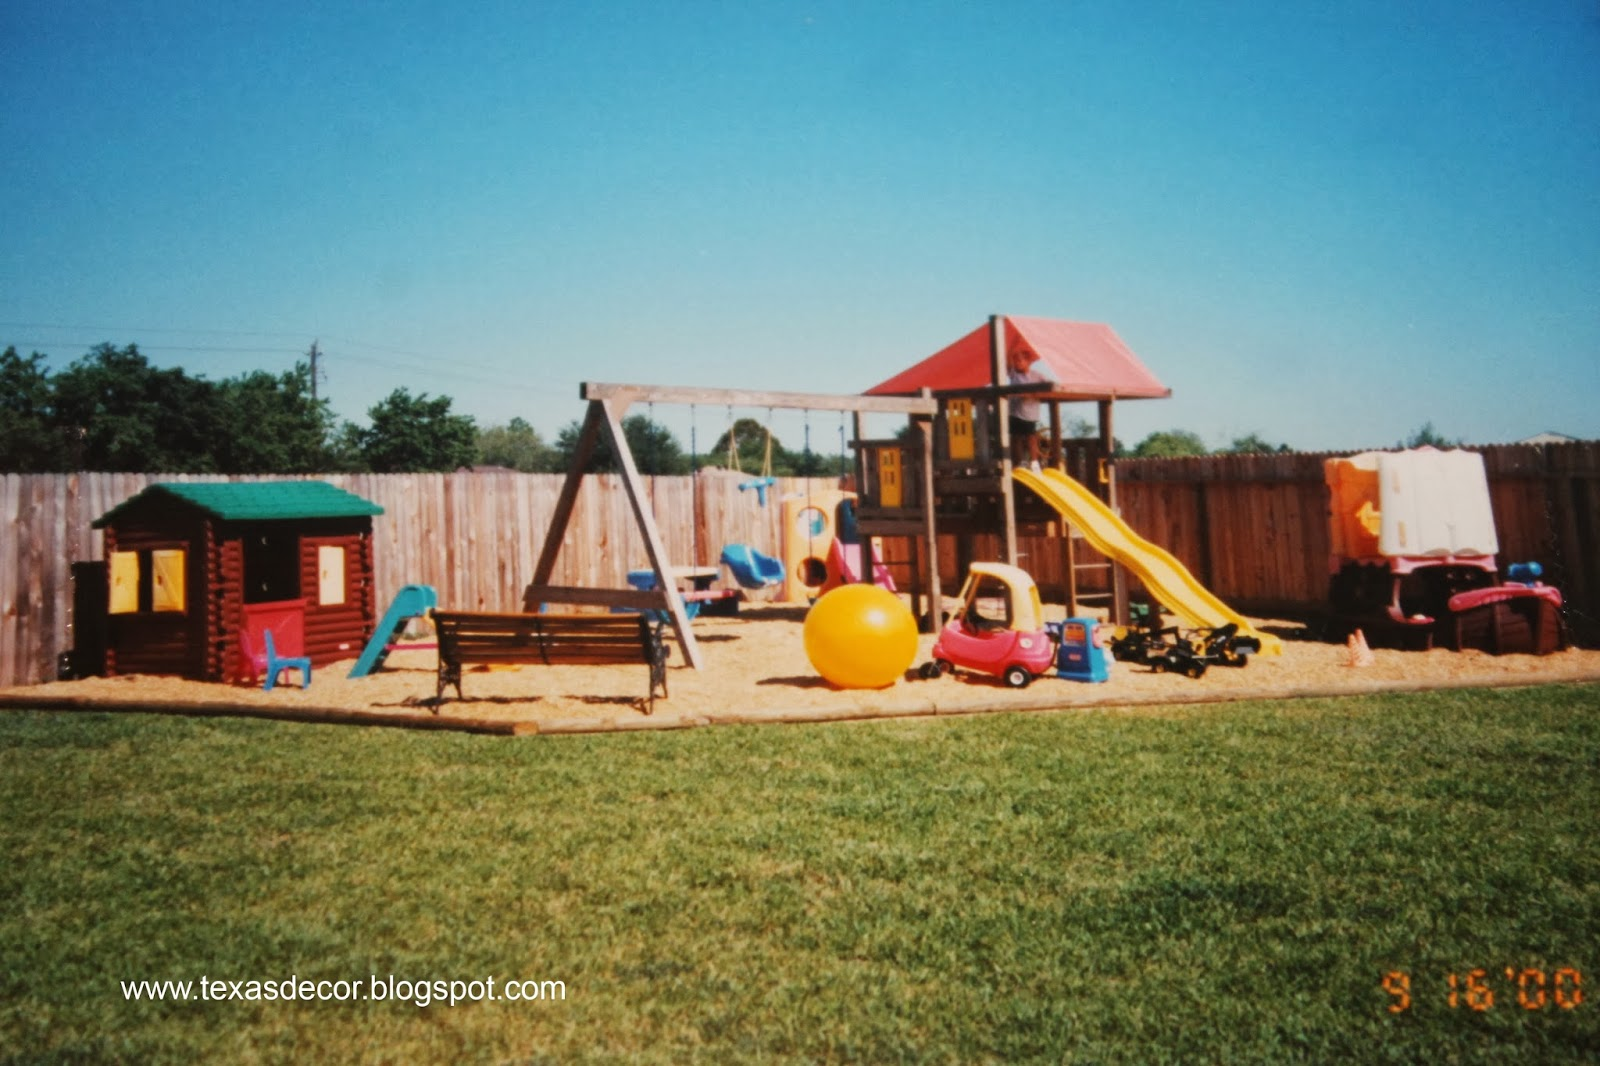 texas decor backyard before and after pics